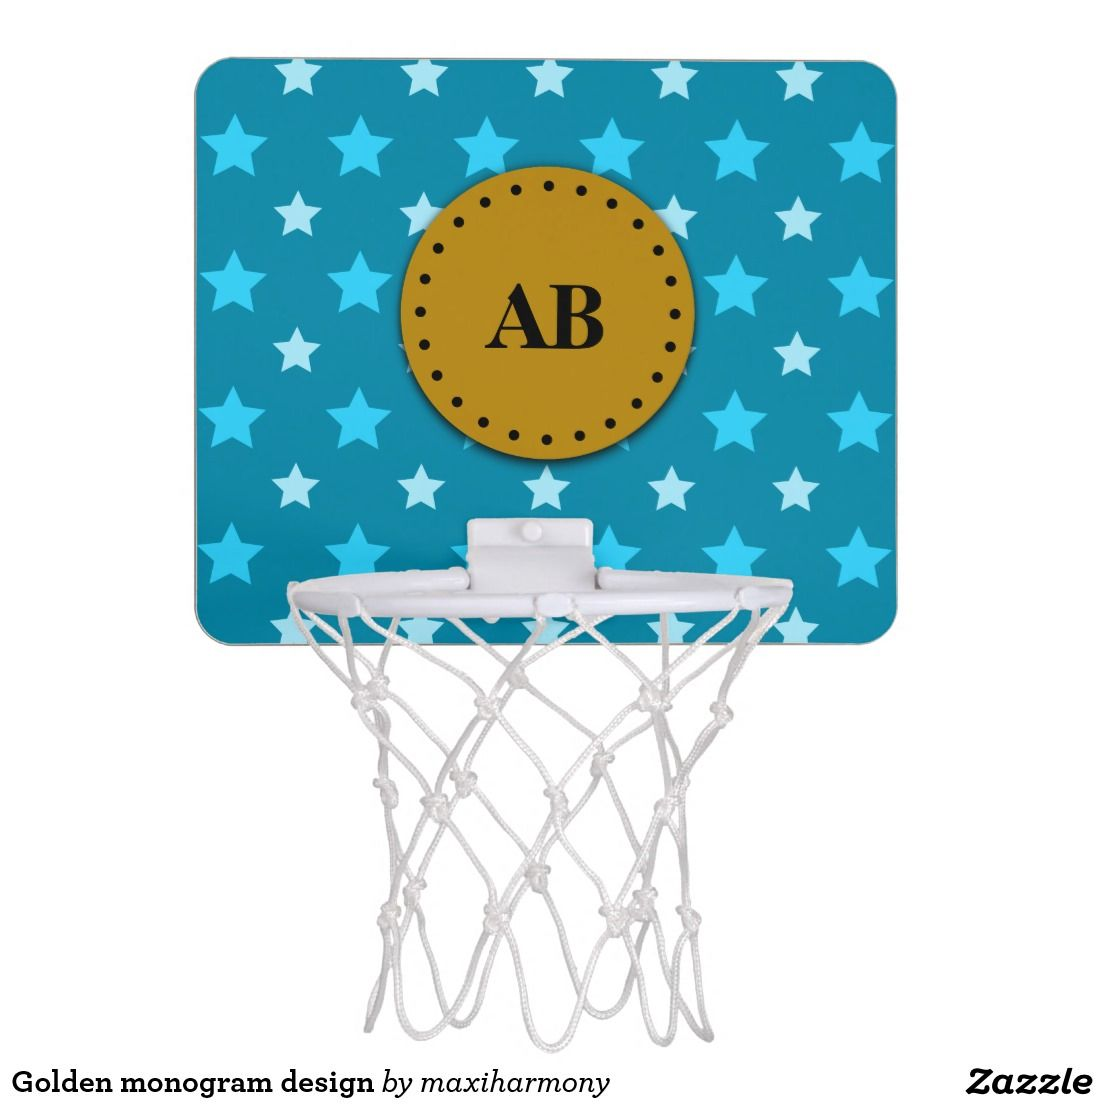 Golden monogram design mini basketball hoop